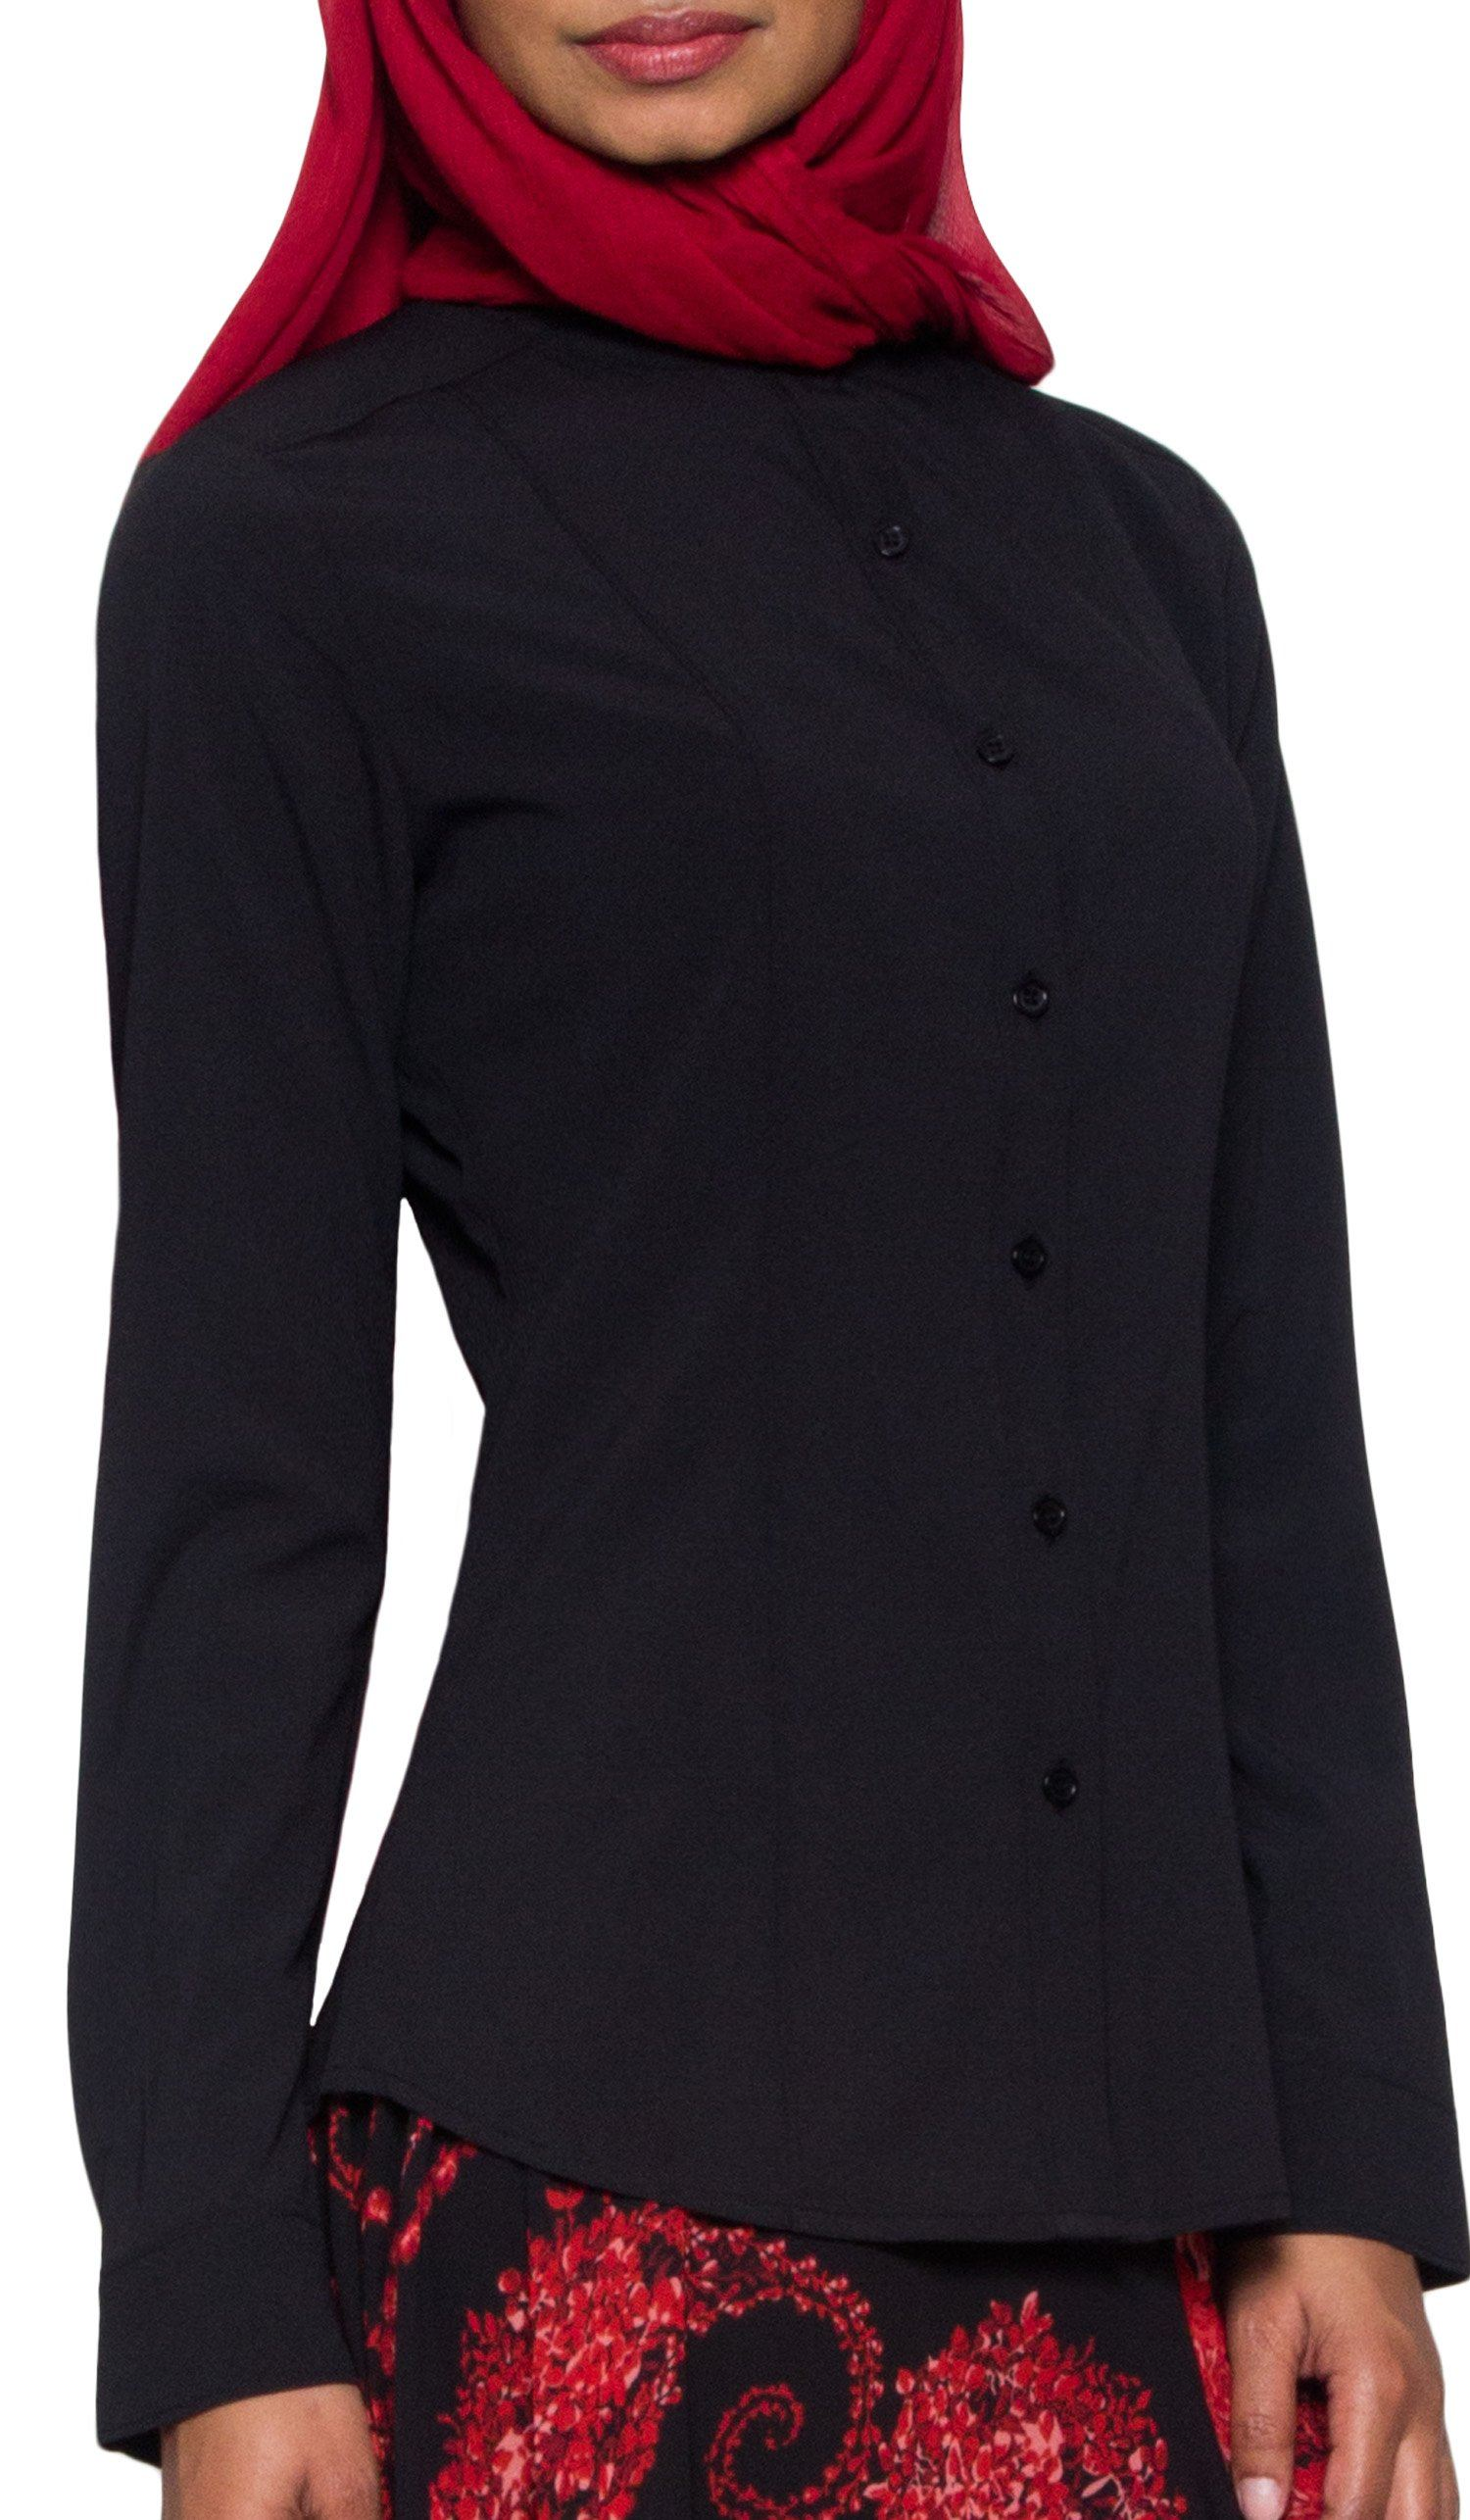 Ayn No Wrinkle Button Down Modest Dress Shirt - Black